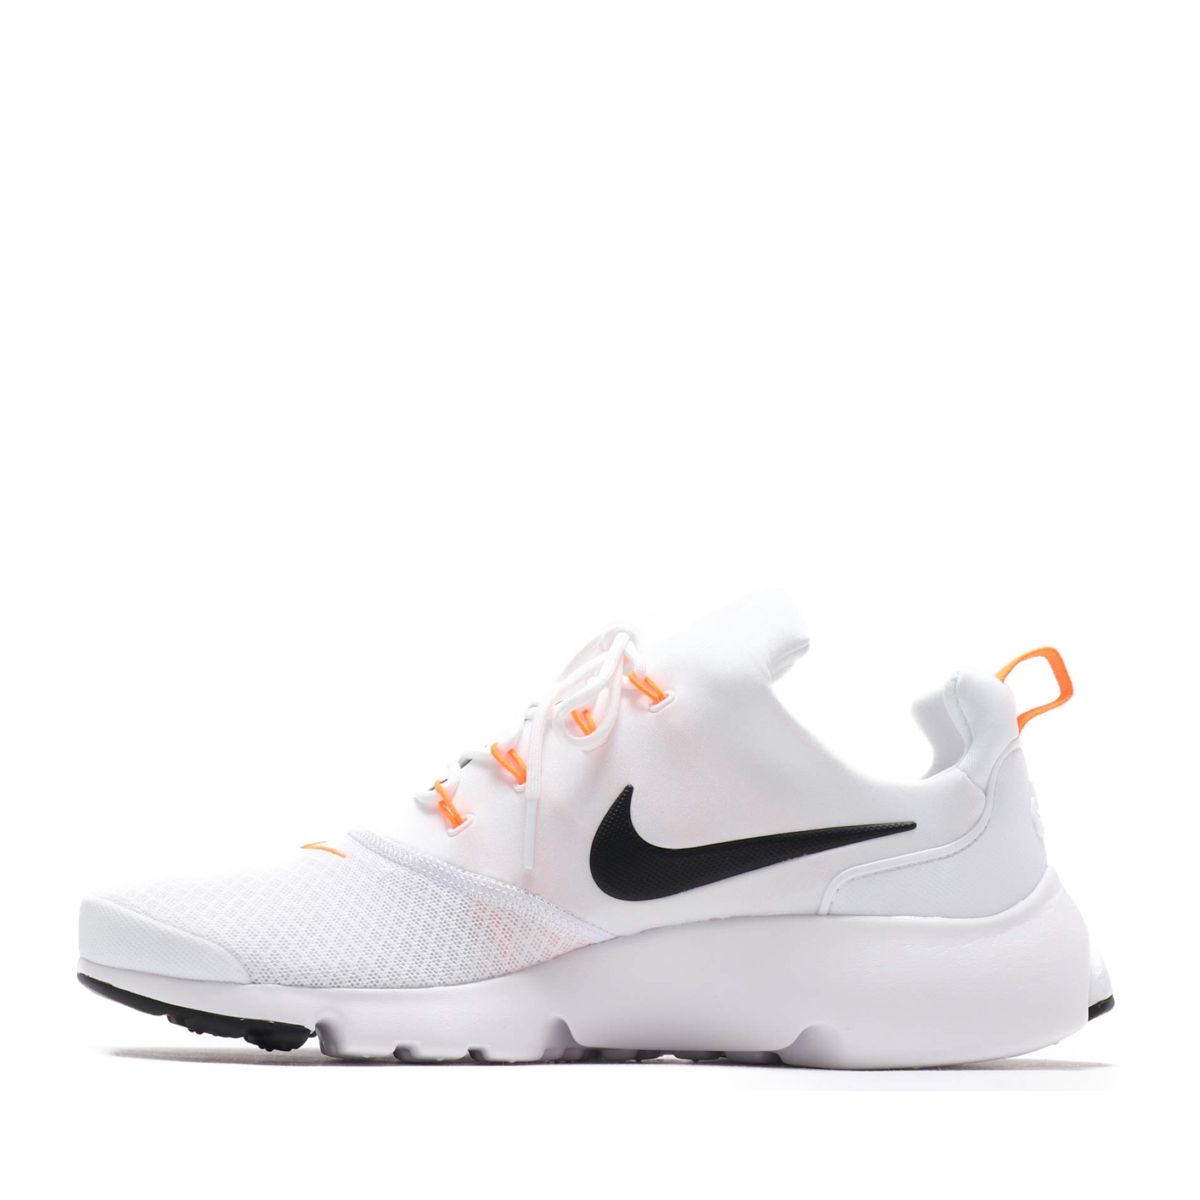 e1ba411cbab54 NIKE PRESTO FLY JDI (Nike presto fly JDI) WHITE BLACK-TOTAL ORANGE 18FA-S